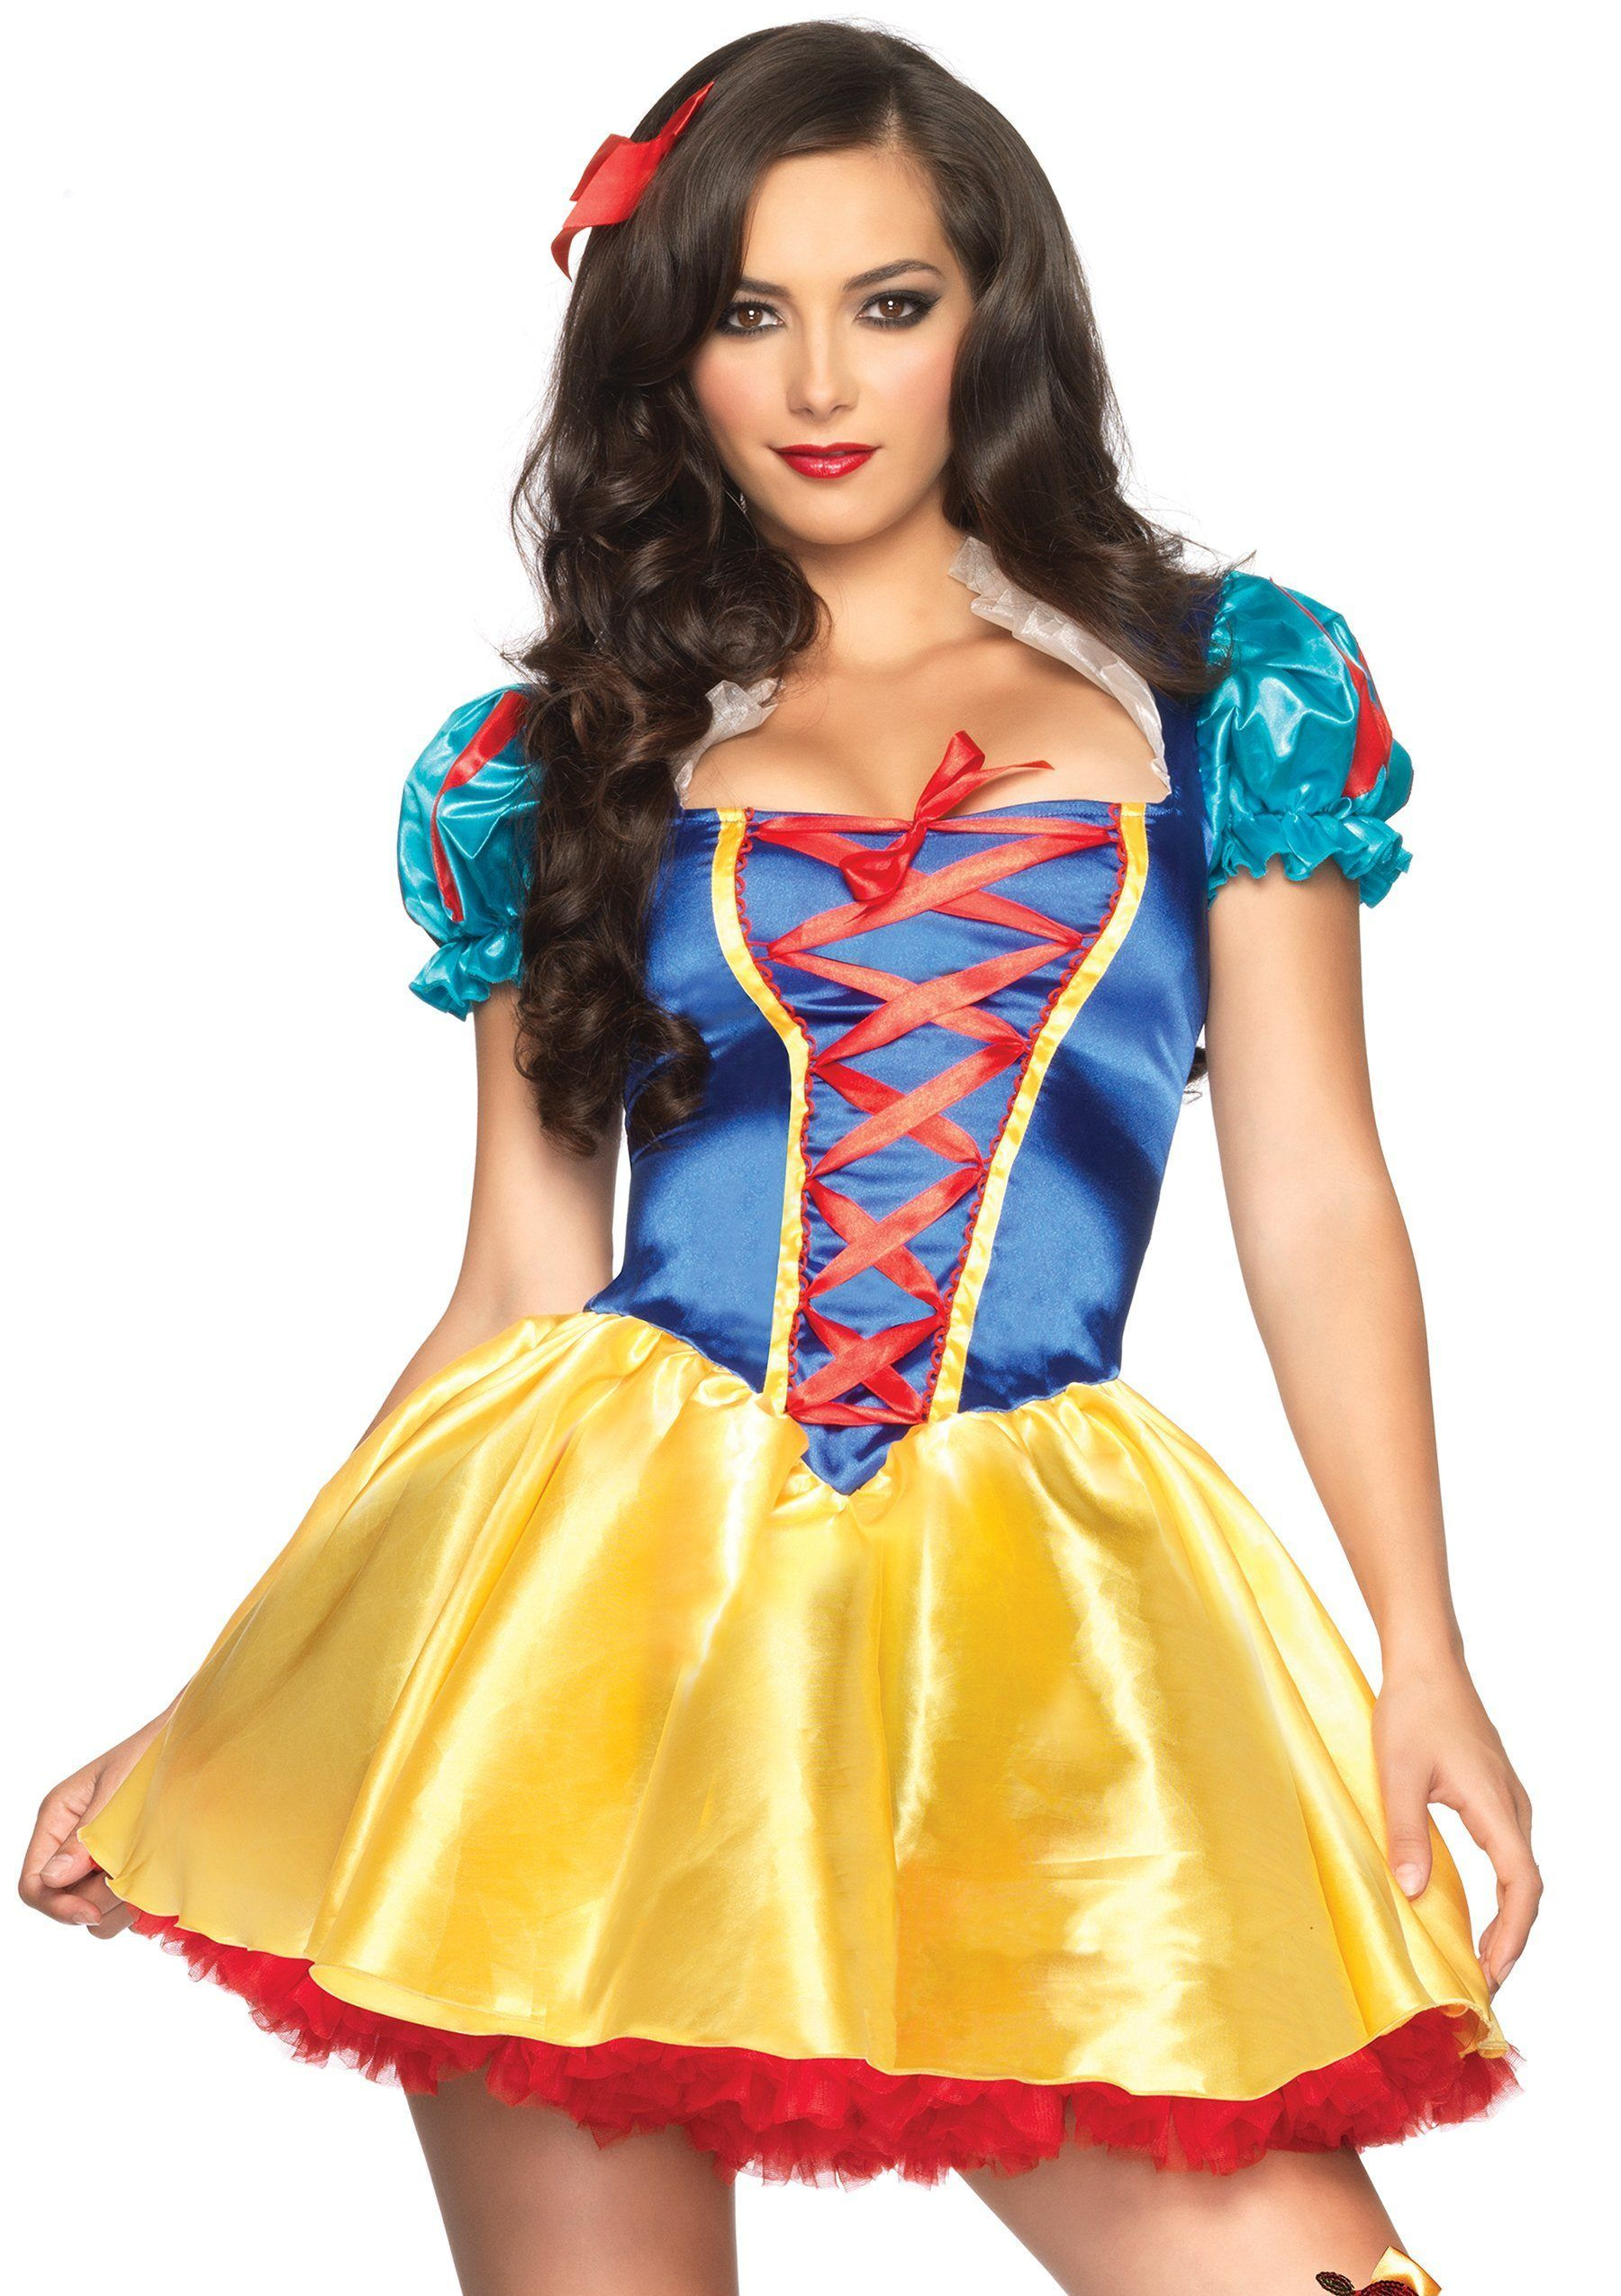 Fairytale Snow White Costume (With images) Costumes for